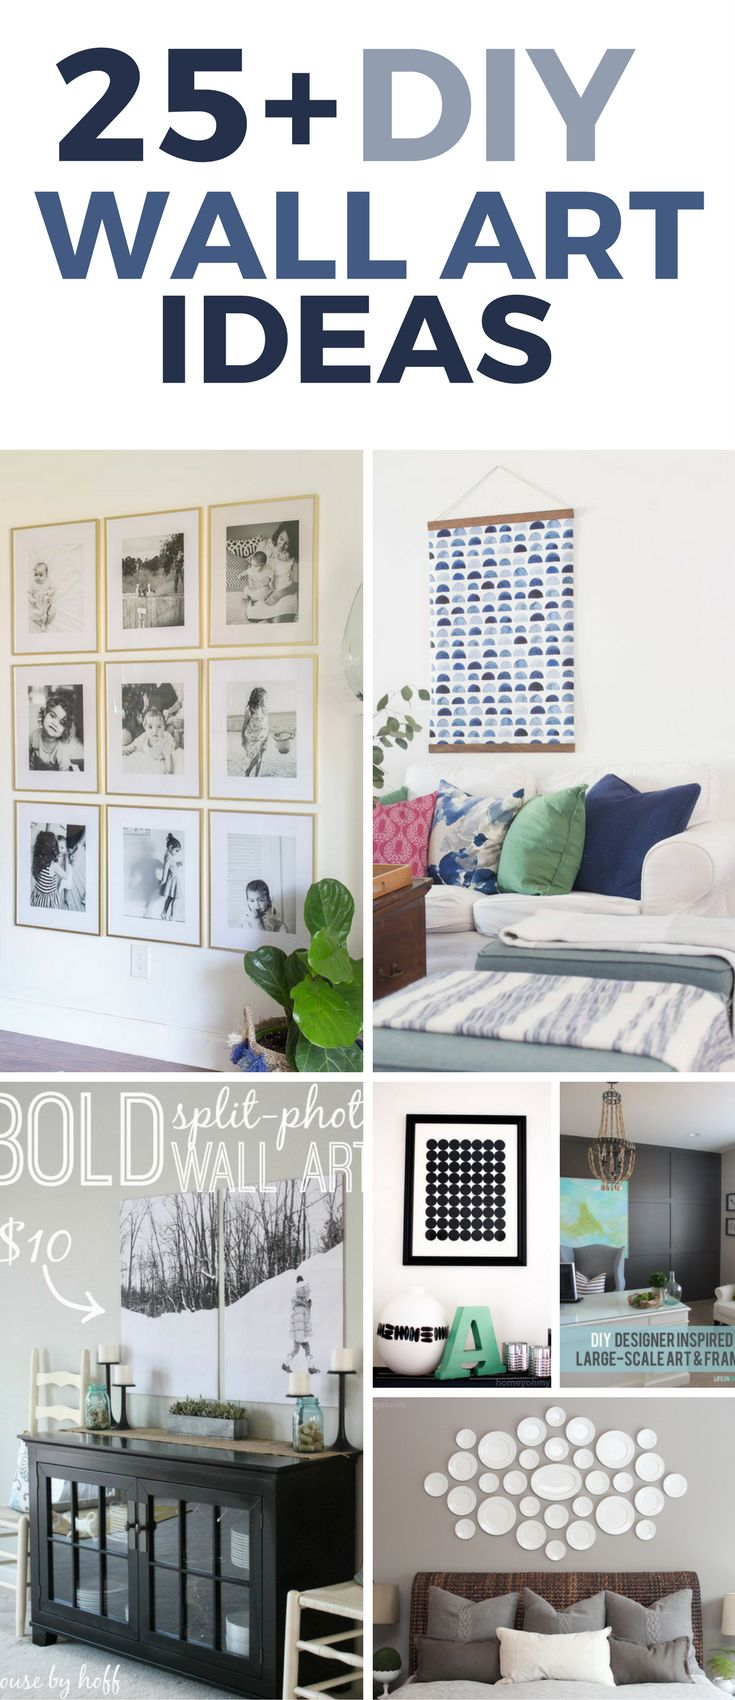 Over 25 Gorgeous DIY Wall Art Projects That Will Inspire You